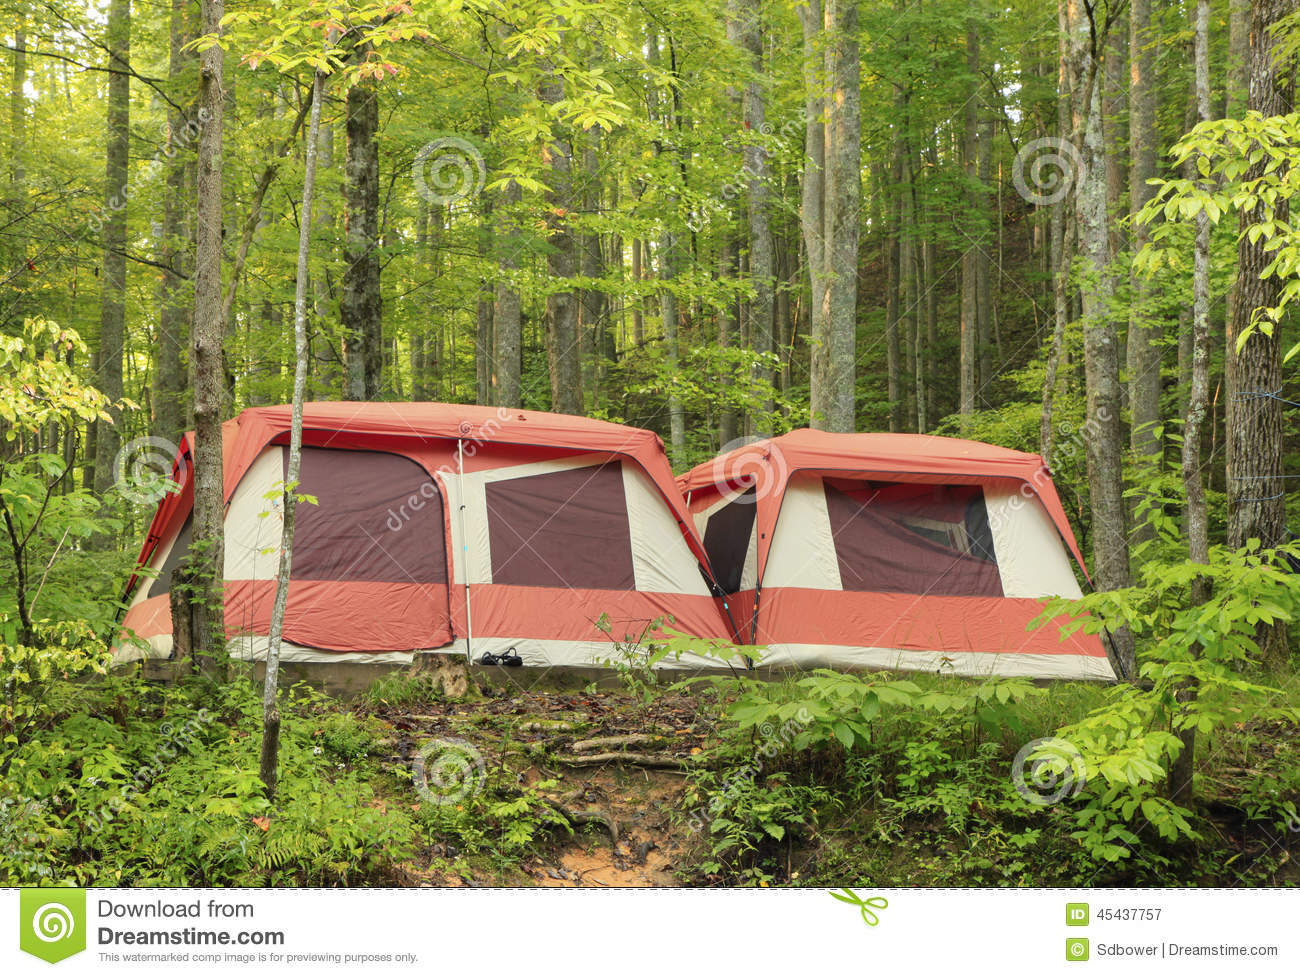 Royalty-Free Stock Photo & Large Brightly Colored Family Camping Tents In The Woods Stock ...